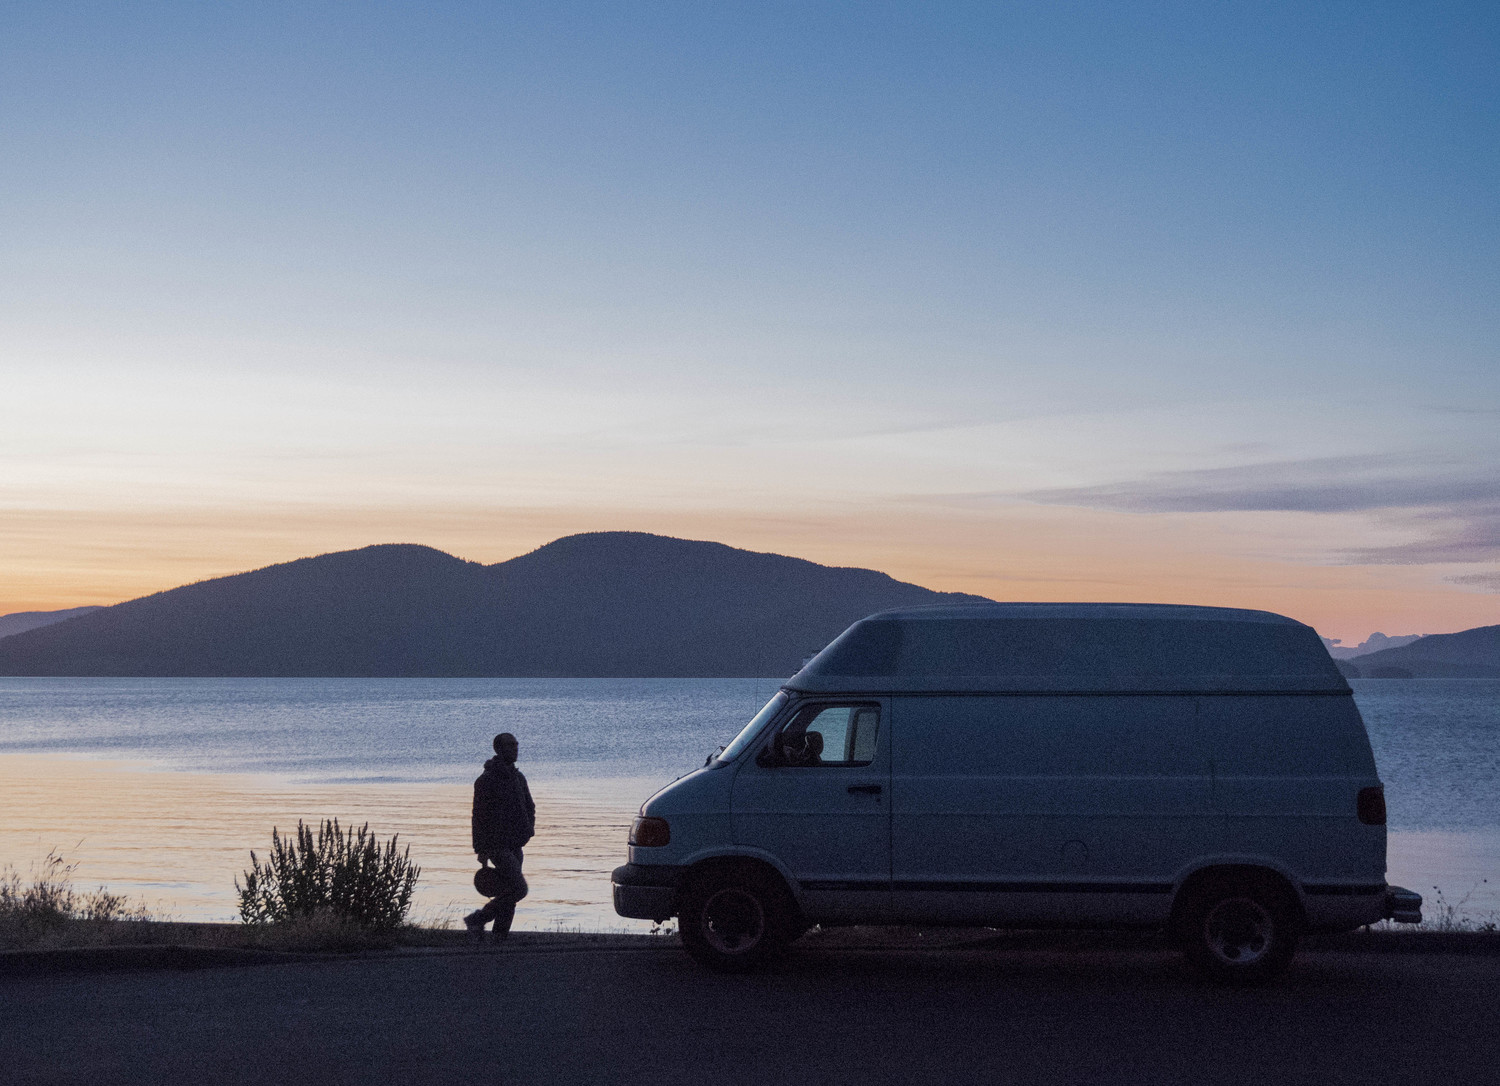 Want to Live In A Van? Here's 5 People Who Do It And What Their Advice Is